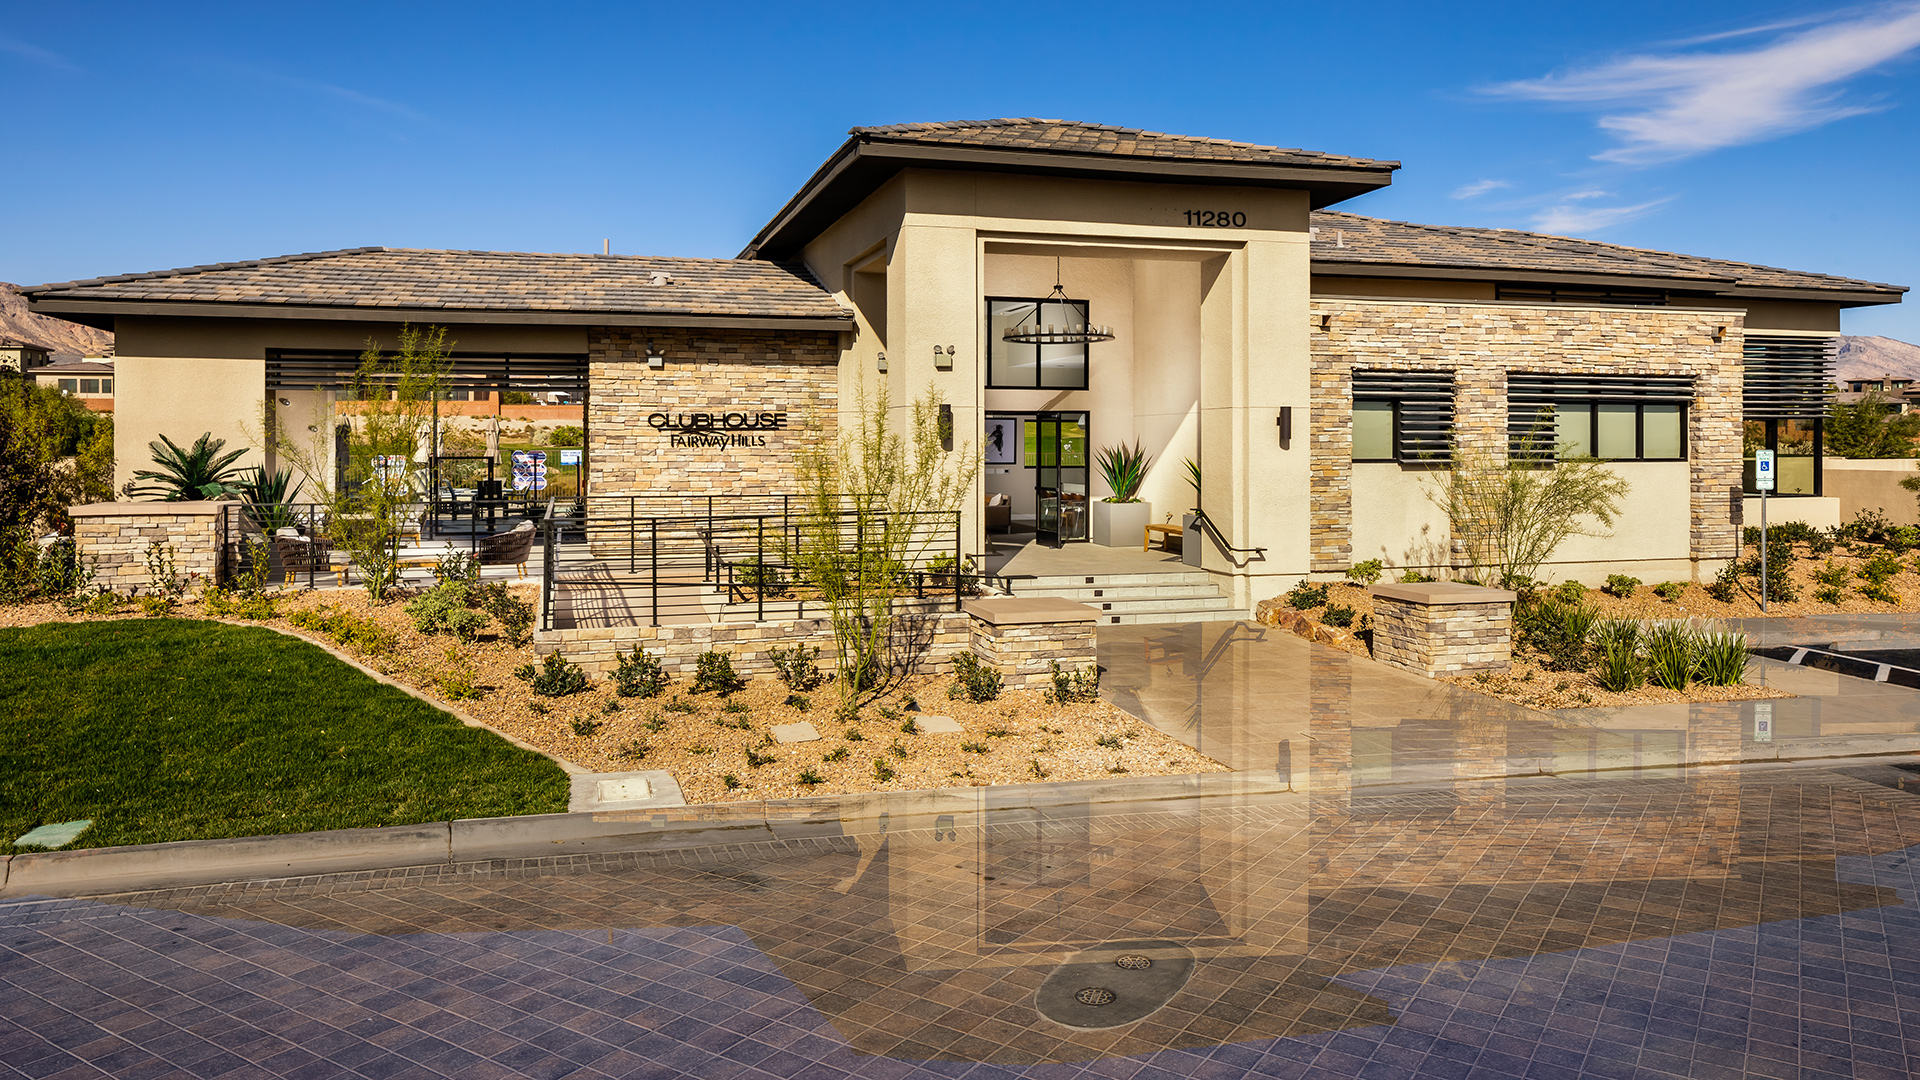 Fairway Hills in the Ridges by Toll Brothers - Fairway Hills Toll Brothers New Construction Homes - Toll Brothers Las Vegas - Toll Brothers fairway Hills homes - toll brothers homes for sale